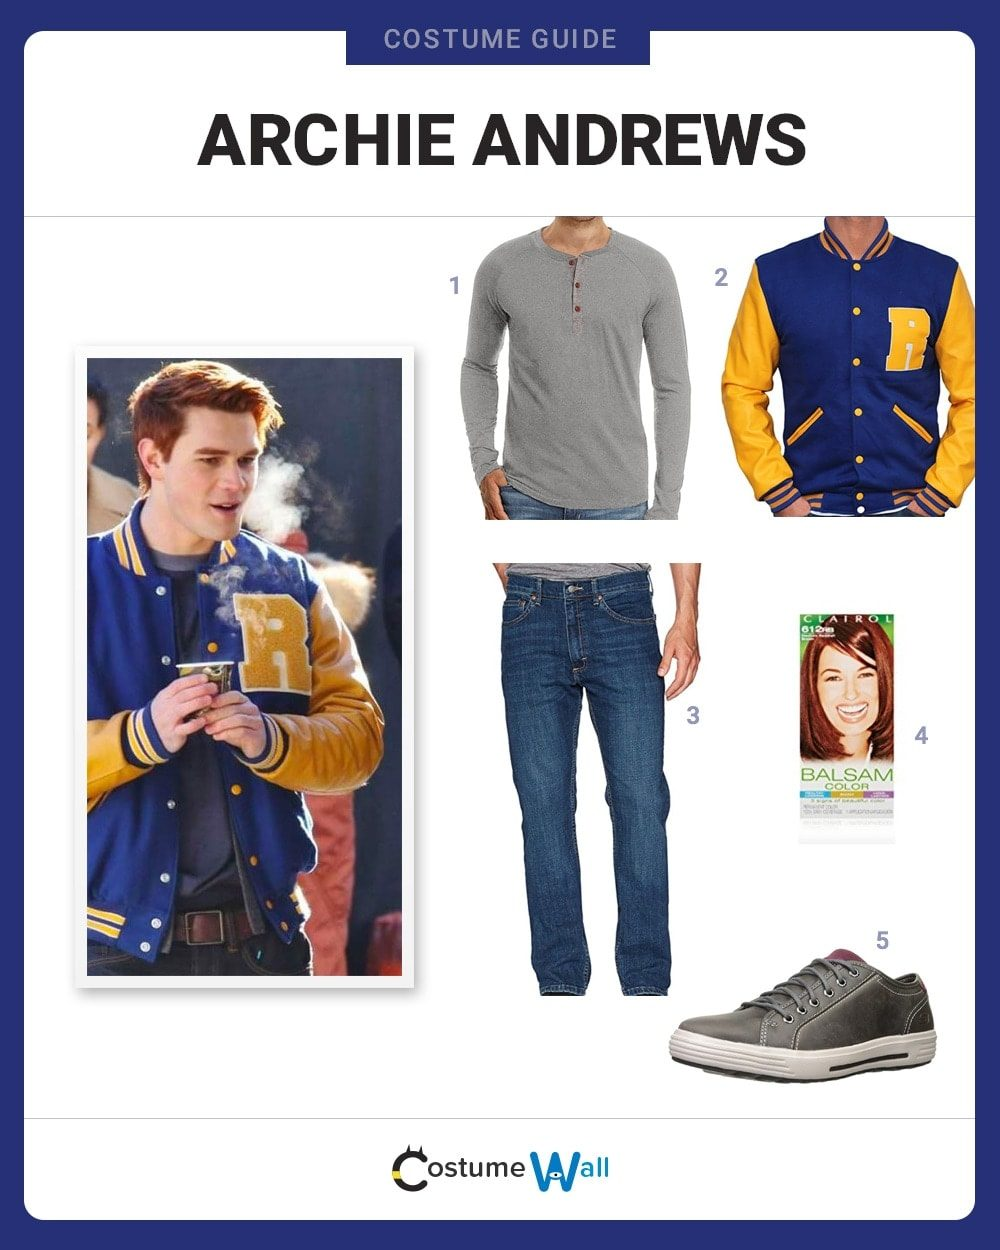 archie andrews costume guide